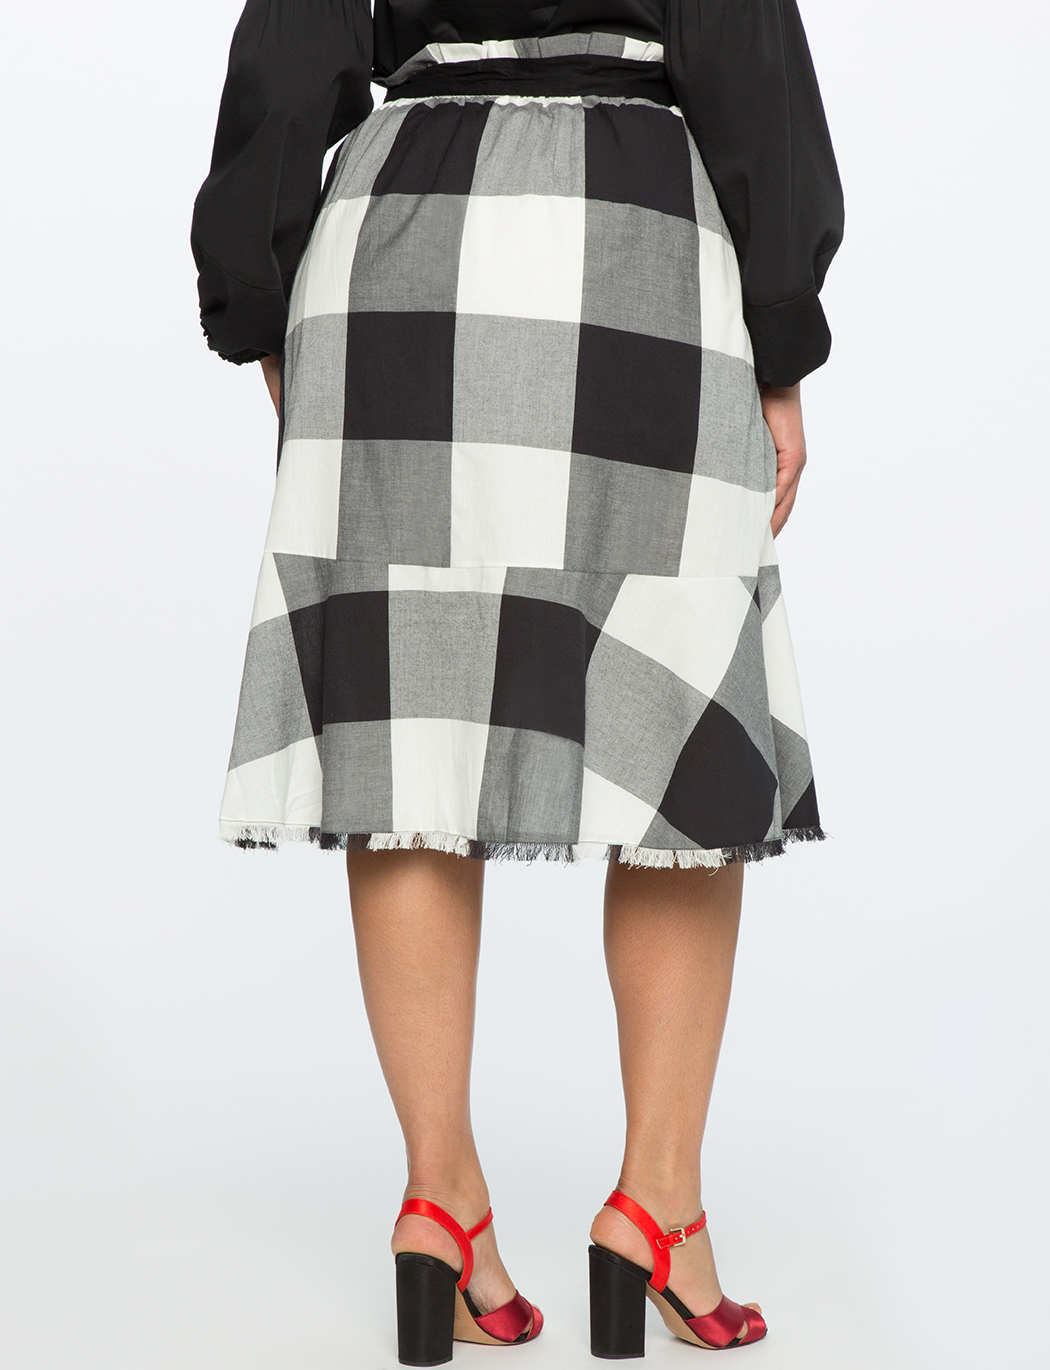 bcd7eb7ea88 Plaid Ruffle Skirt with Paper Bag Waist